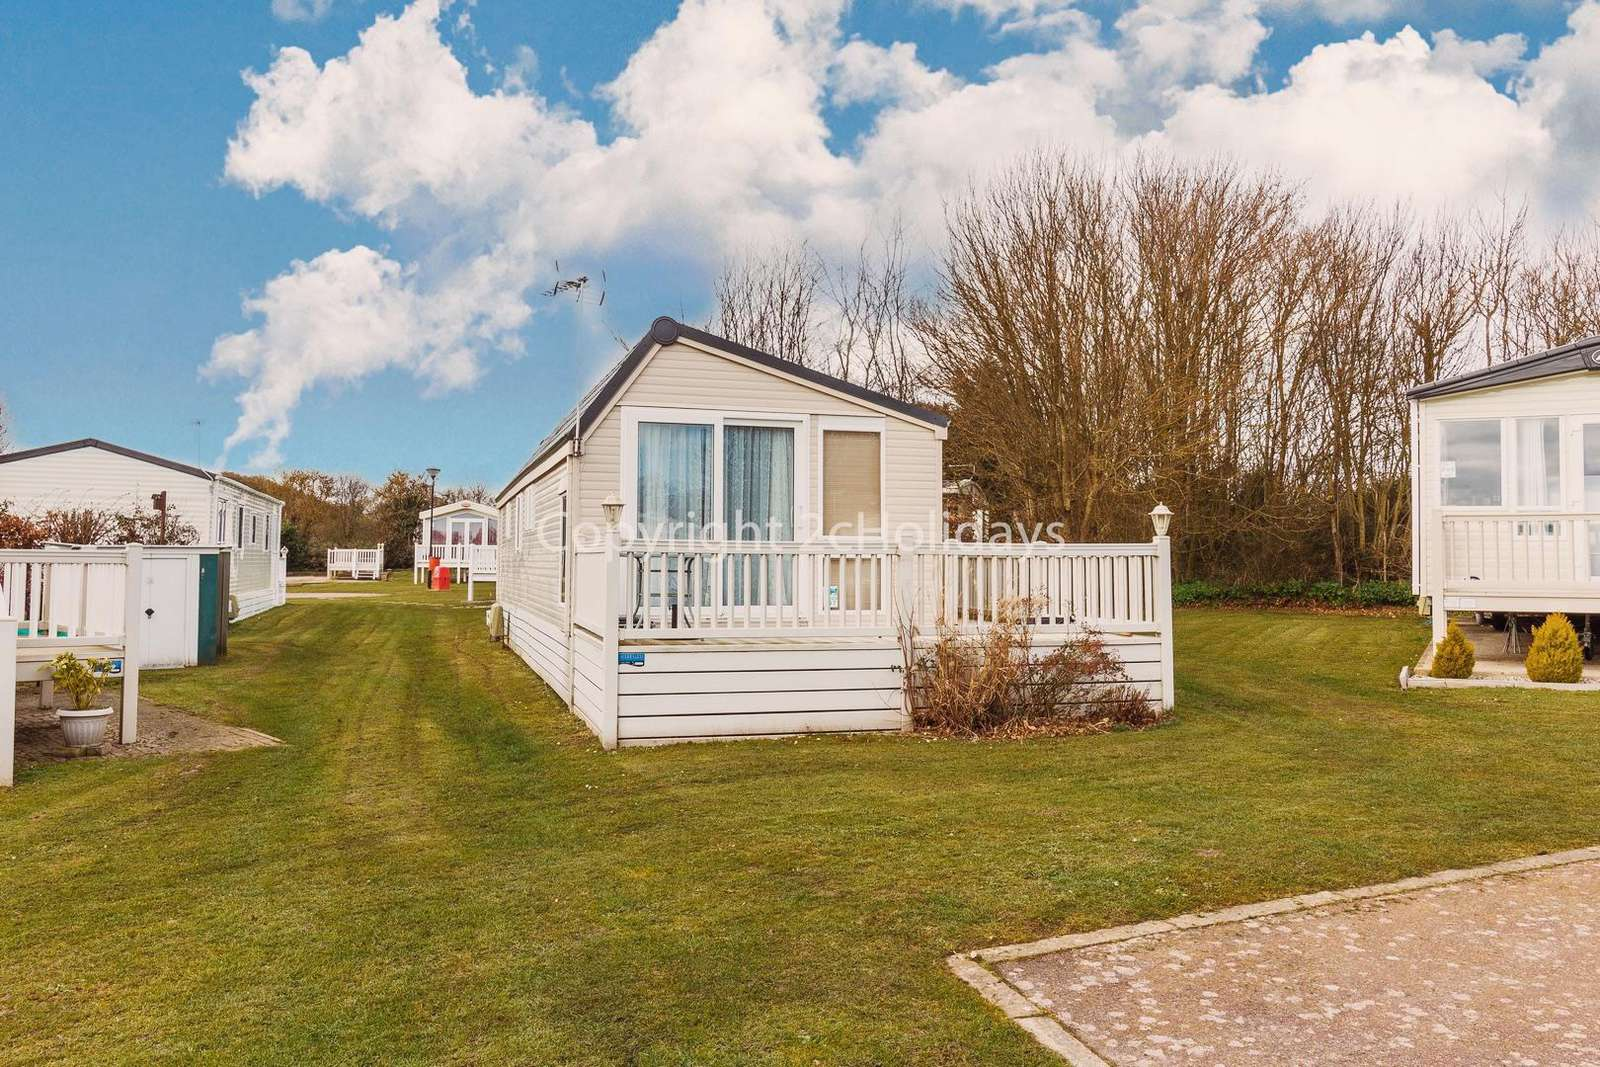 So many families have enjoyed their stay at Cherry Tree Holiday Park